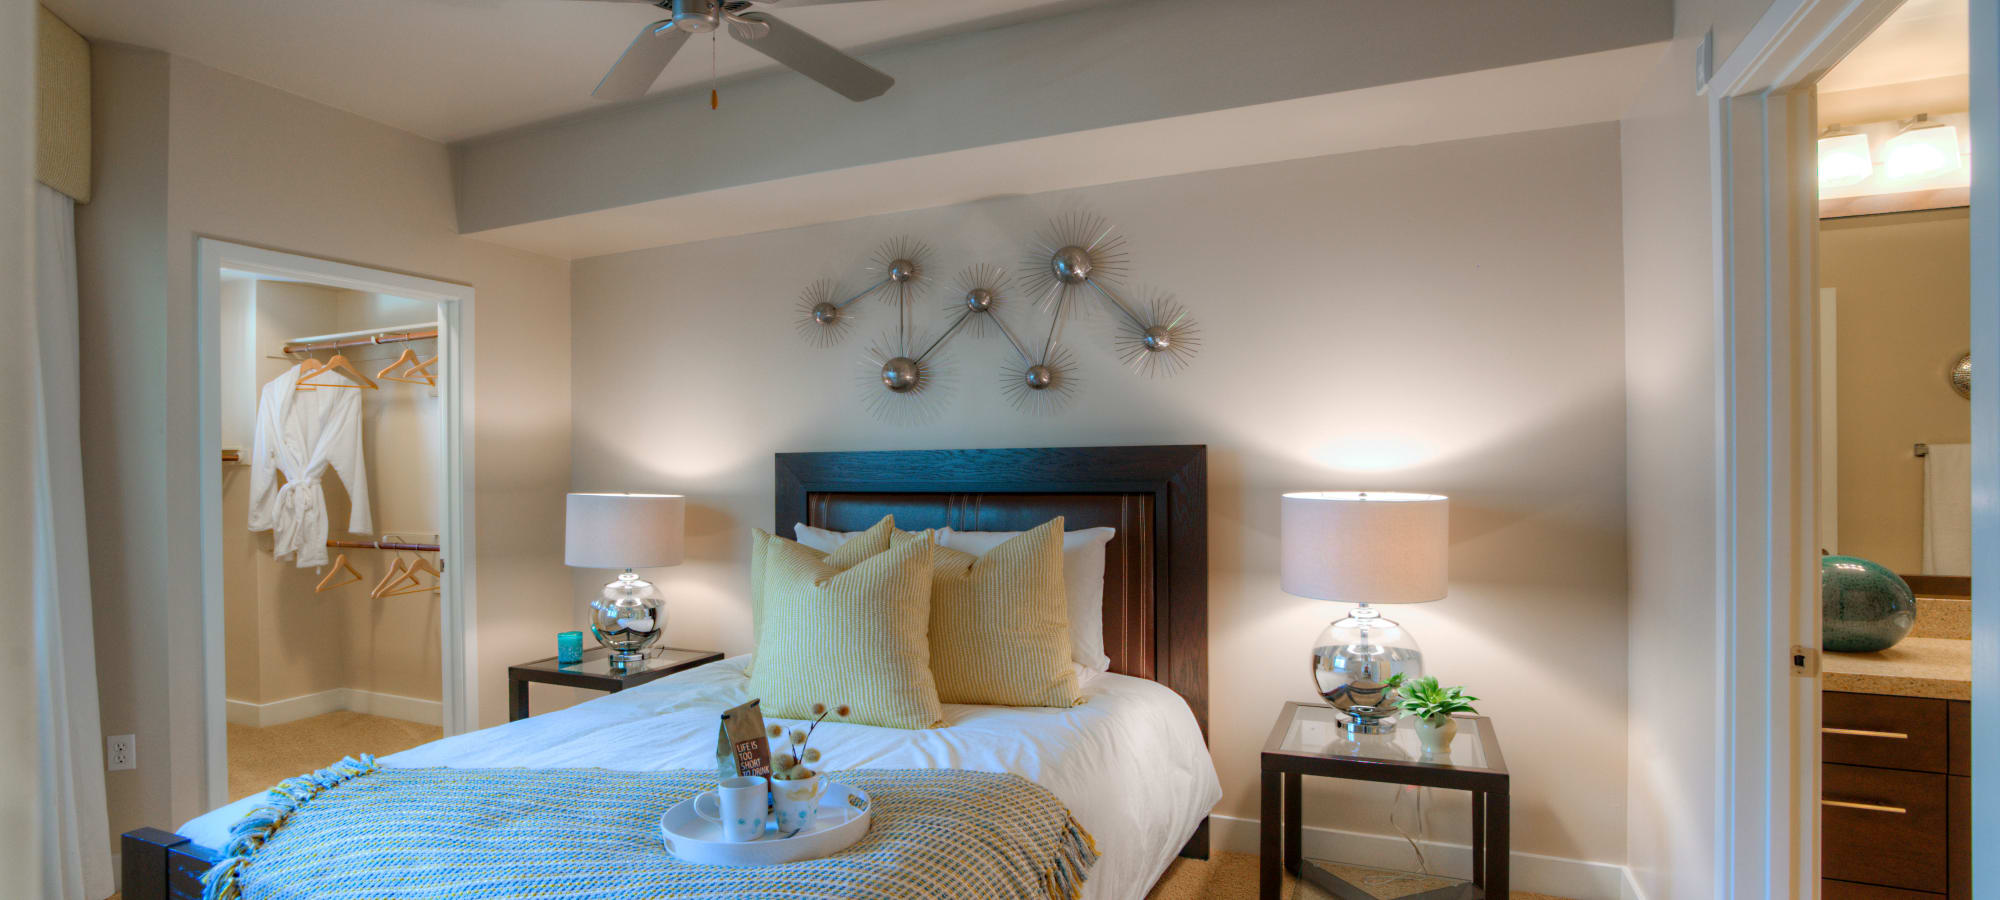 Large master bedroom with walk-in closet and en suite bathroom in model home at Level at Sixteenth in Phoenix, Arizona